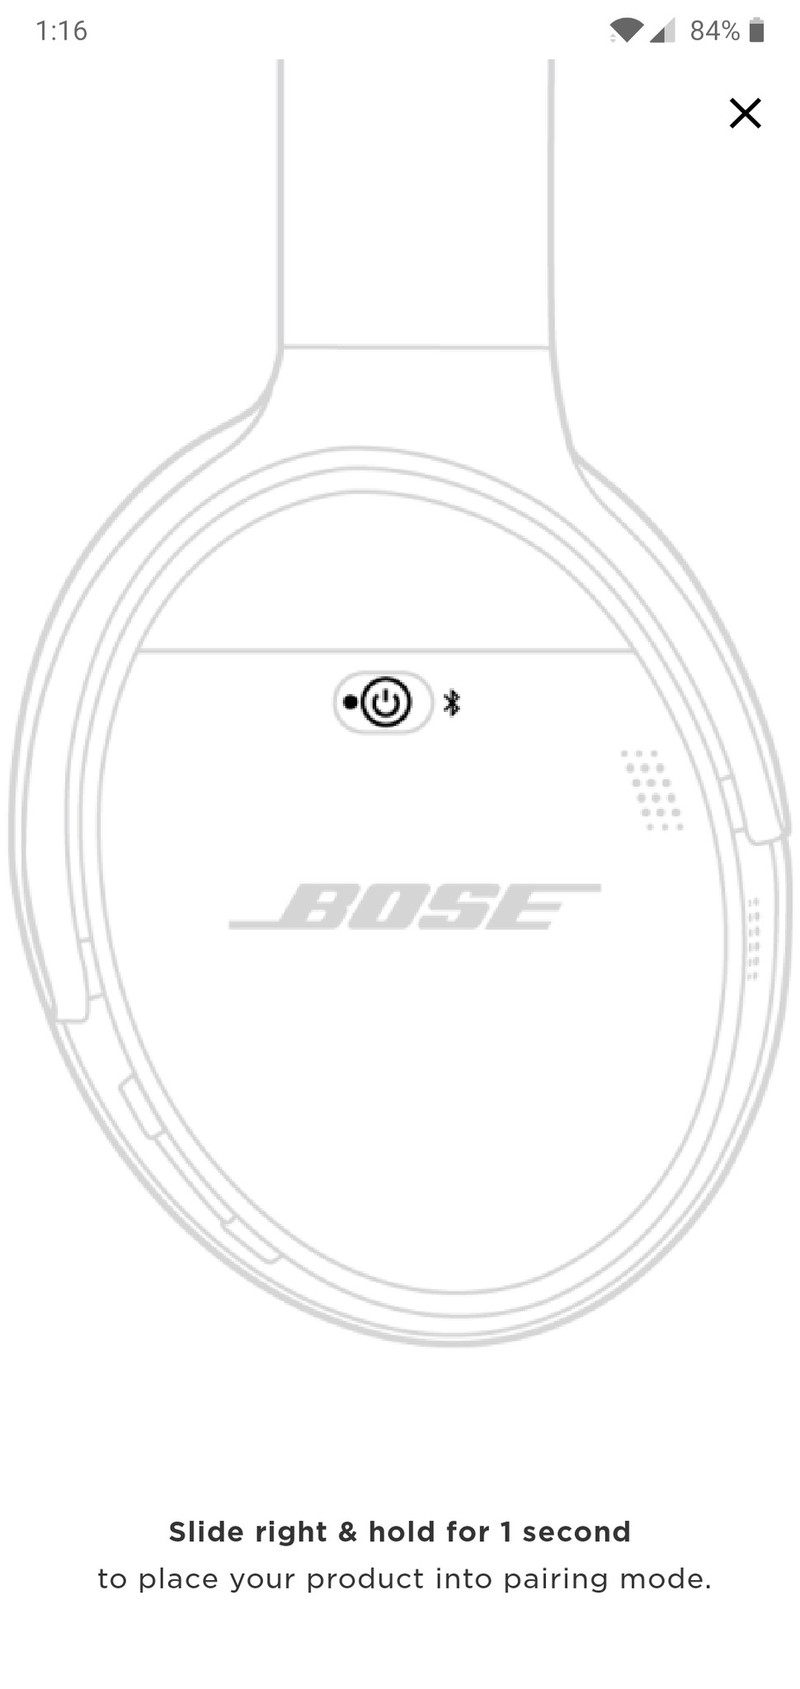 bose-qc35-how-to-pair-13.jpg?itok=qnEhuO